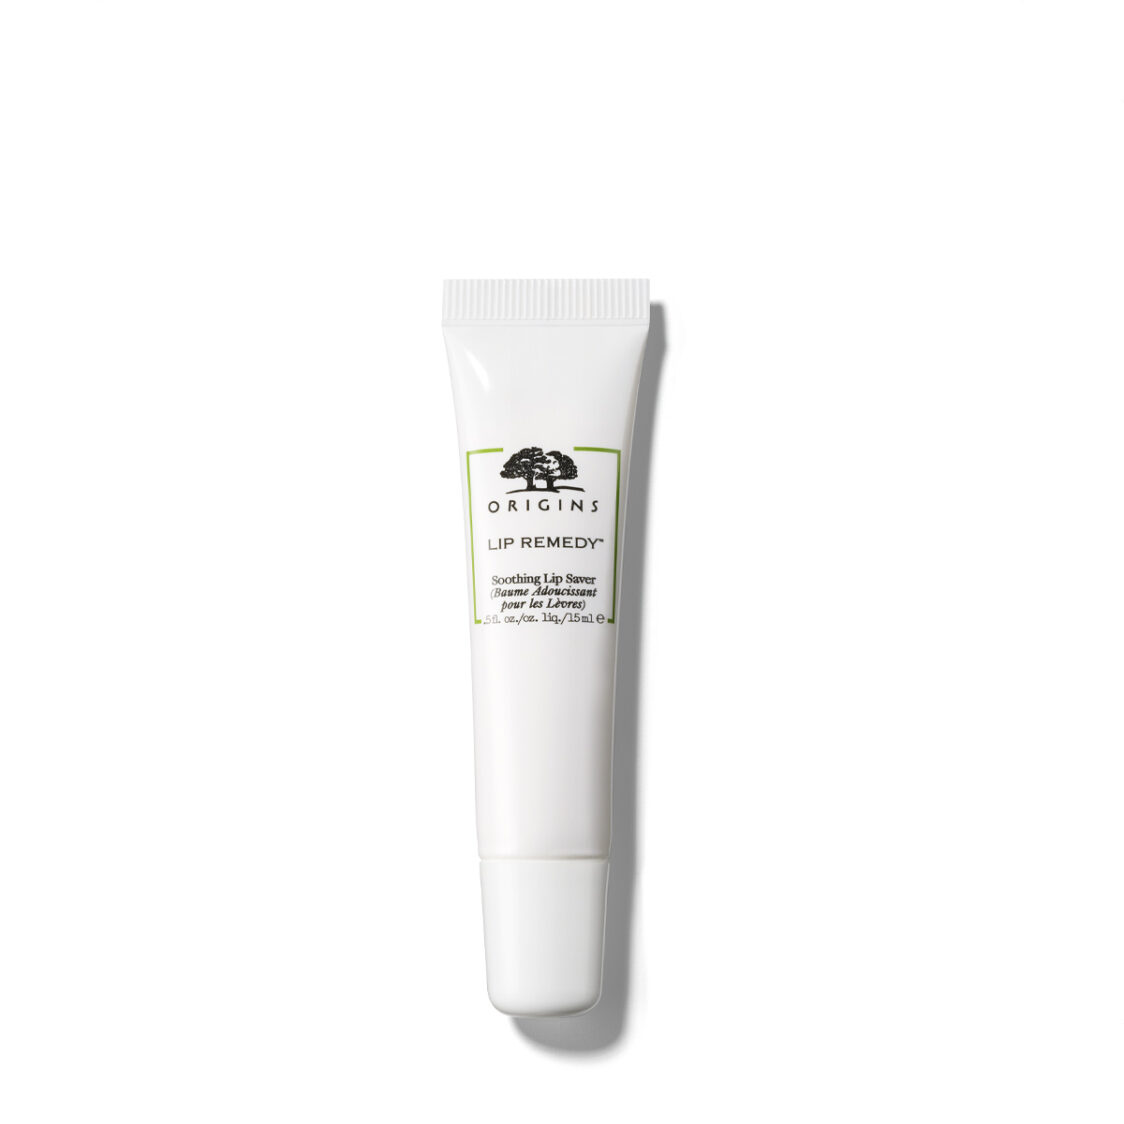 Origins Lip Remedy Soothing Lip Saver 15ml